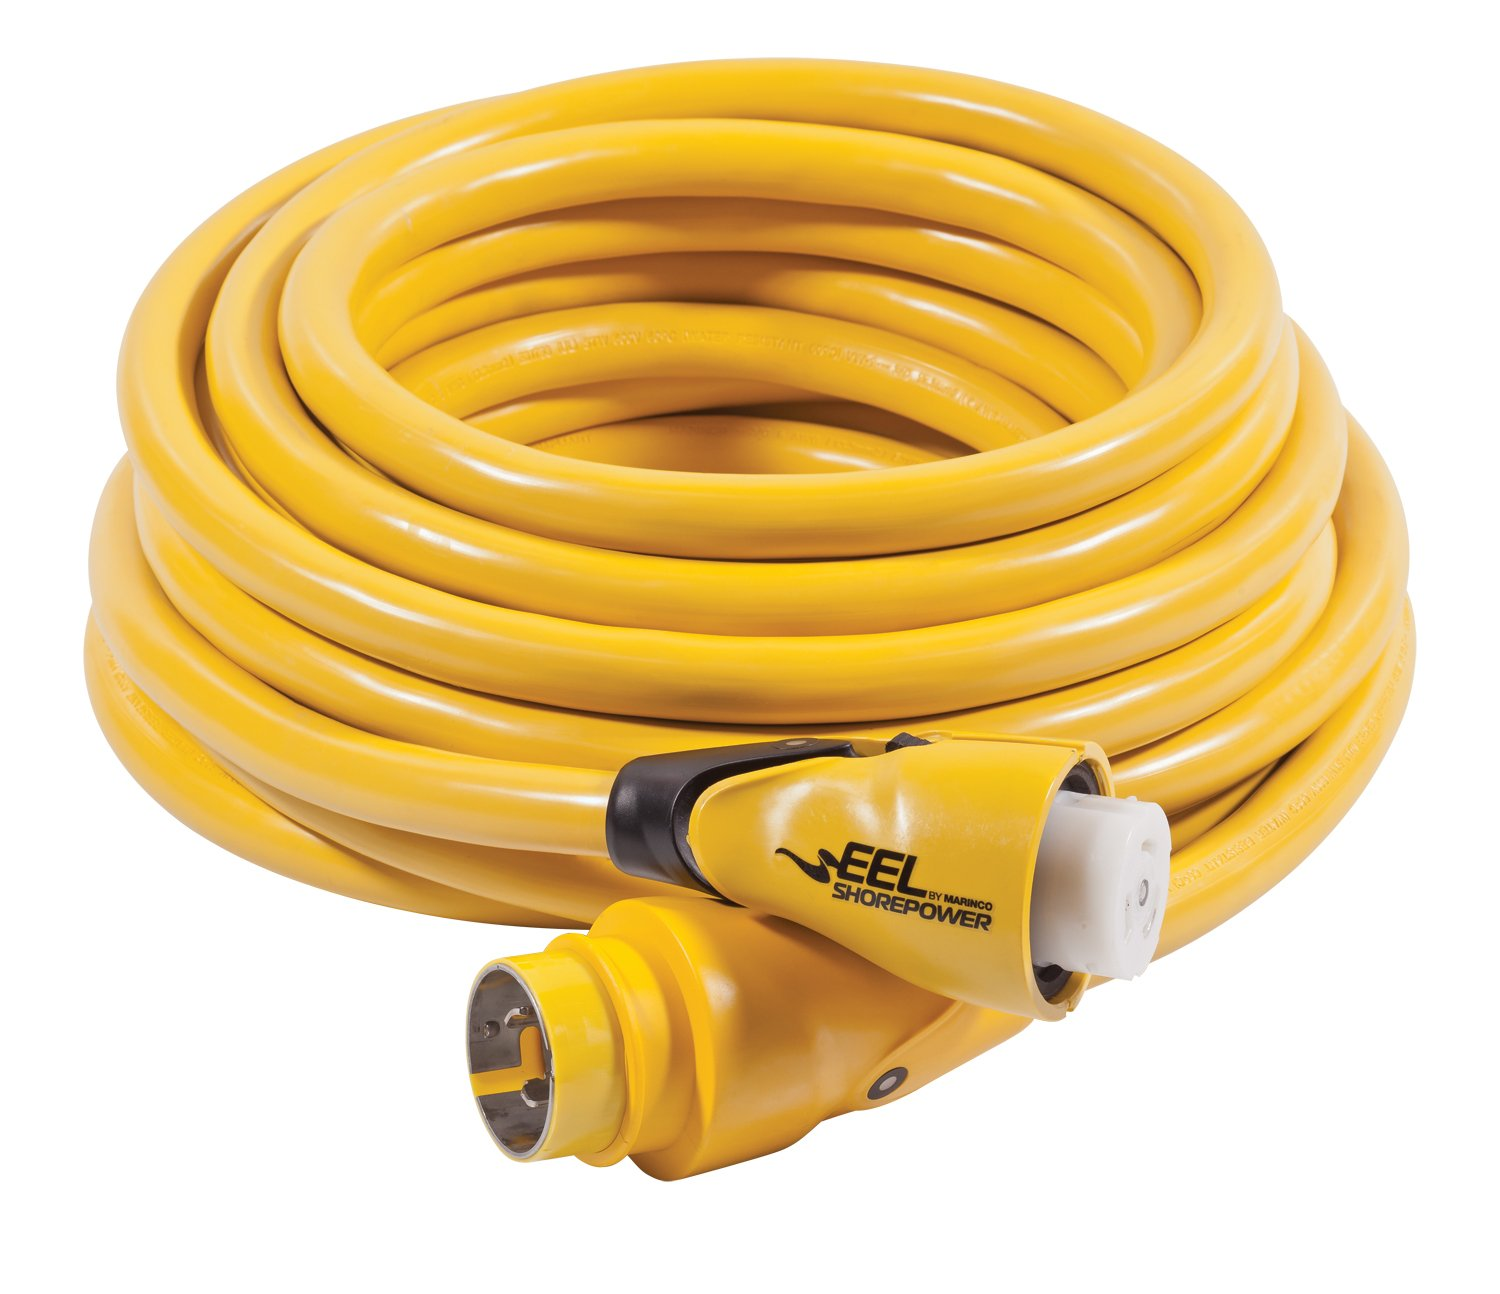 Marinco Eel Shorepower Cordsets Boating Shore Power Plug Receptacle Wiring Diagram Cords Sports Outdoors